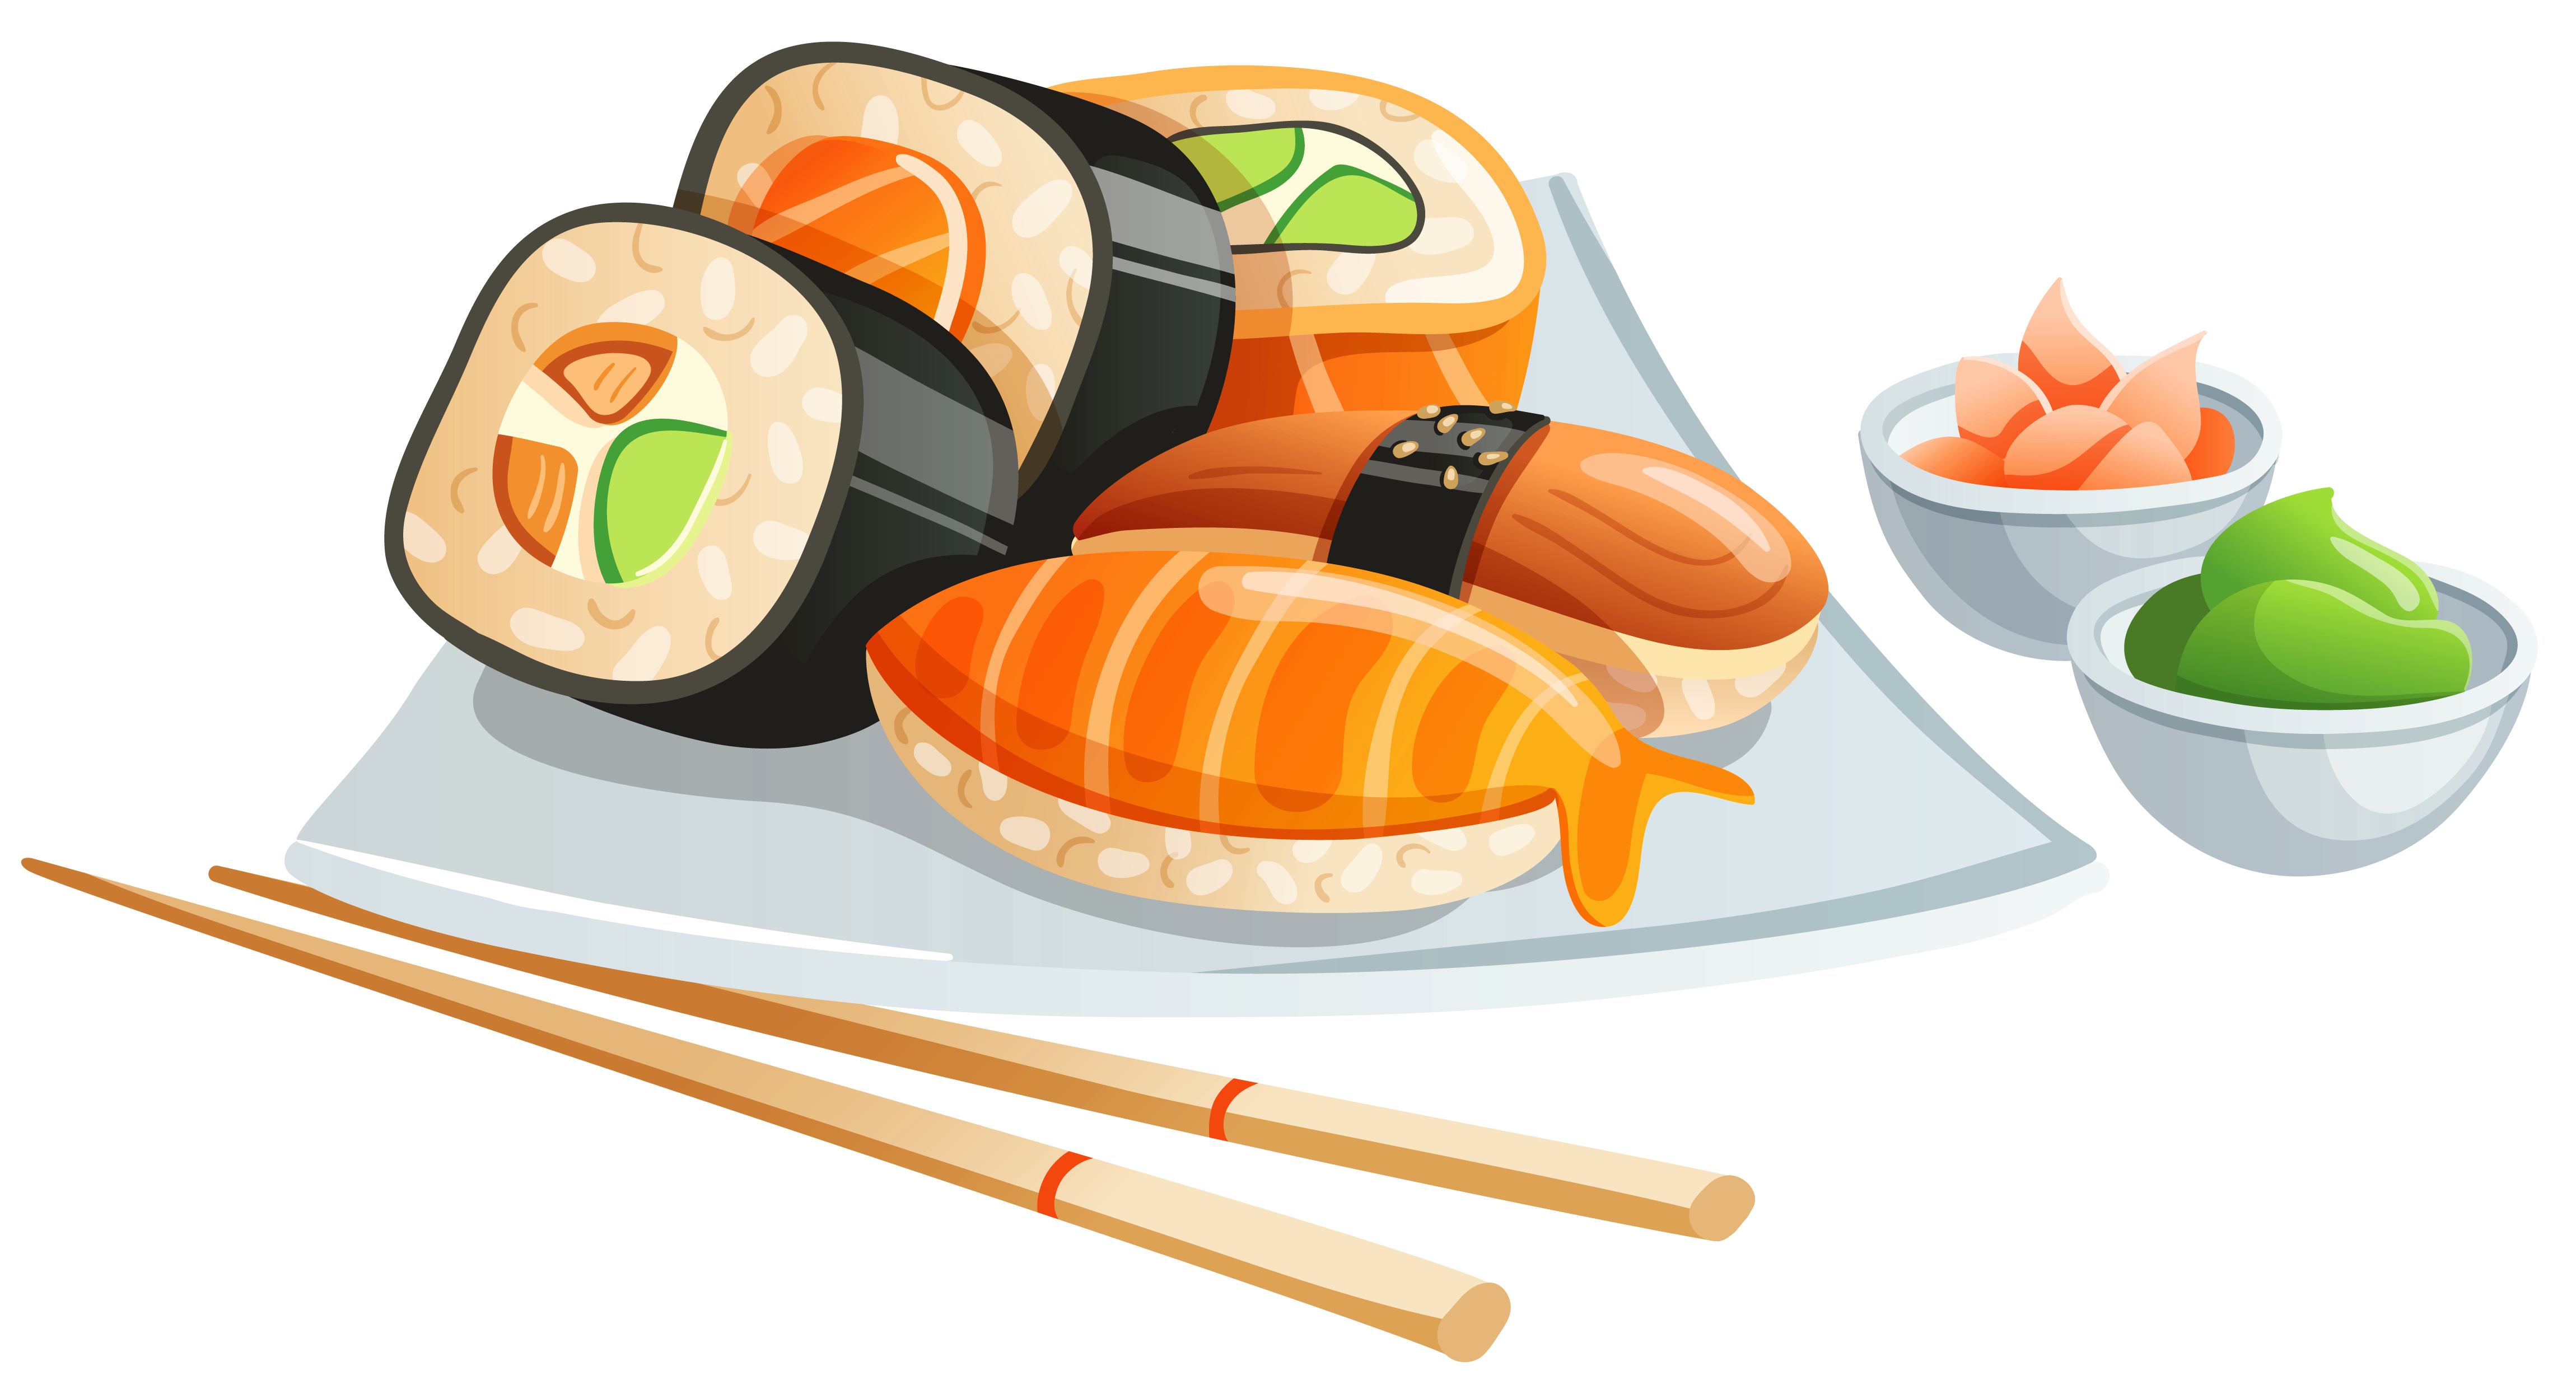 Free clipart sushi royalty free download Free Sushi Cliparts, Download Free Clip Art, Free Clip Art on ... royalty free download